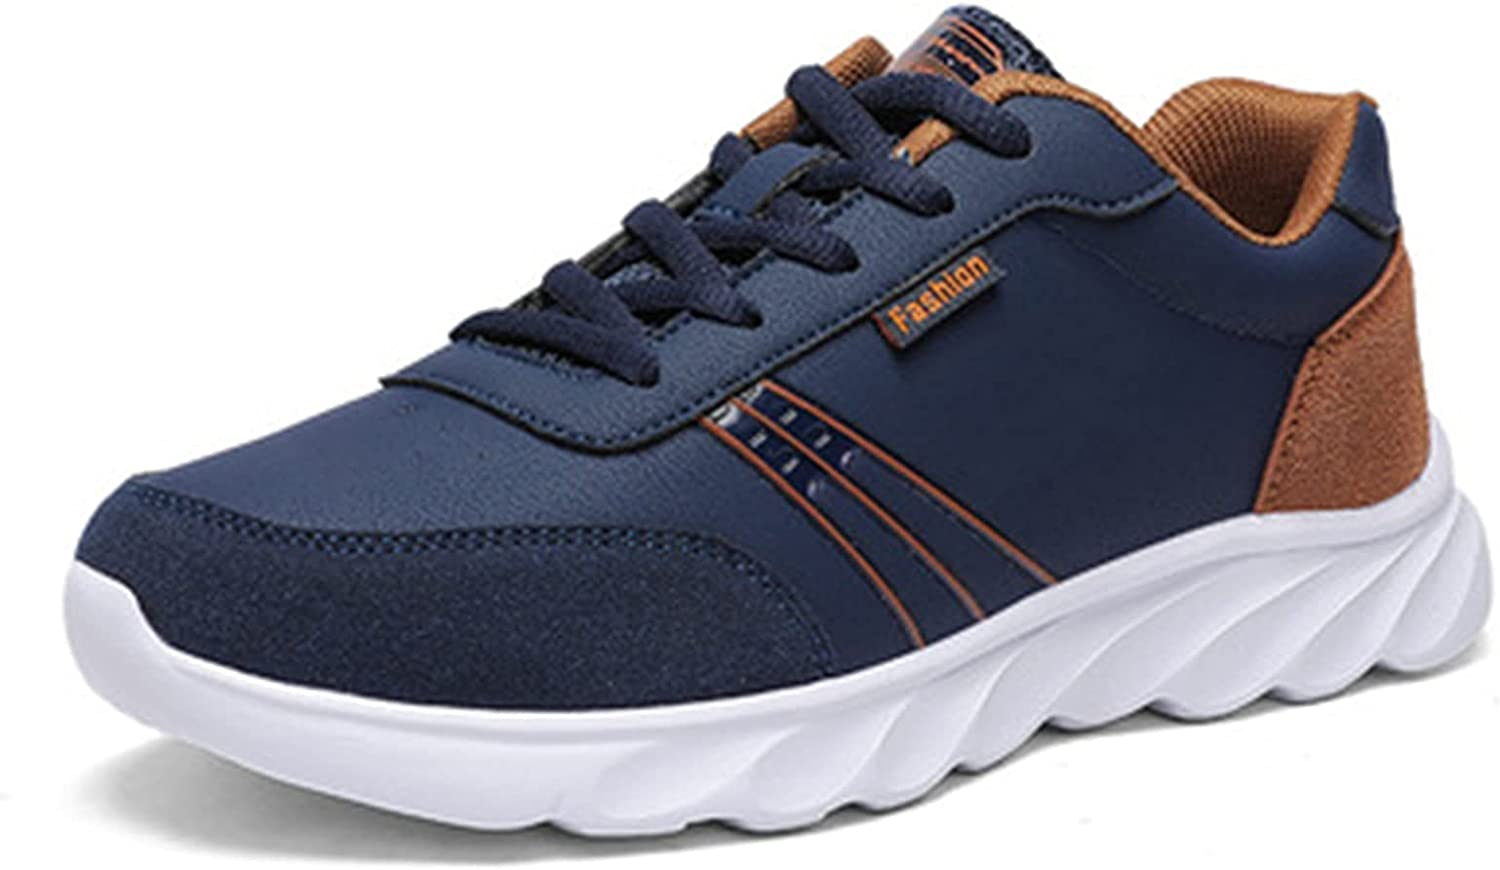 Men's Running Shoes Womens Super sale period limited Trainers Low-Top Athletic Luxury goods Light Flat